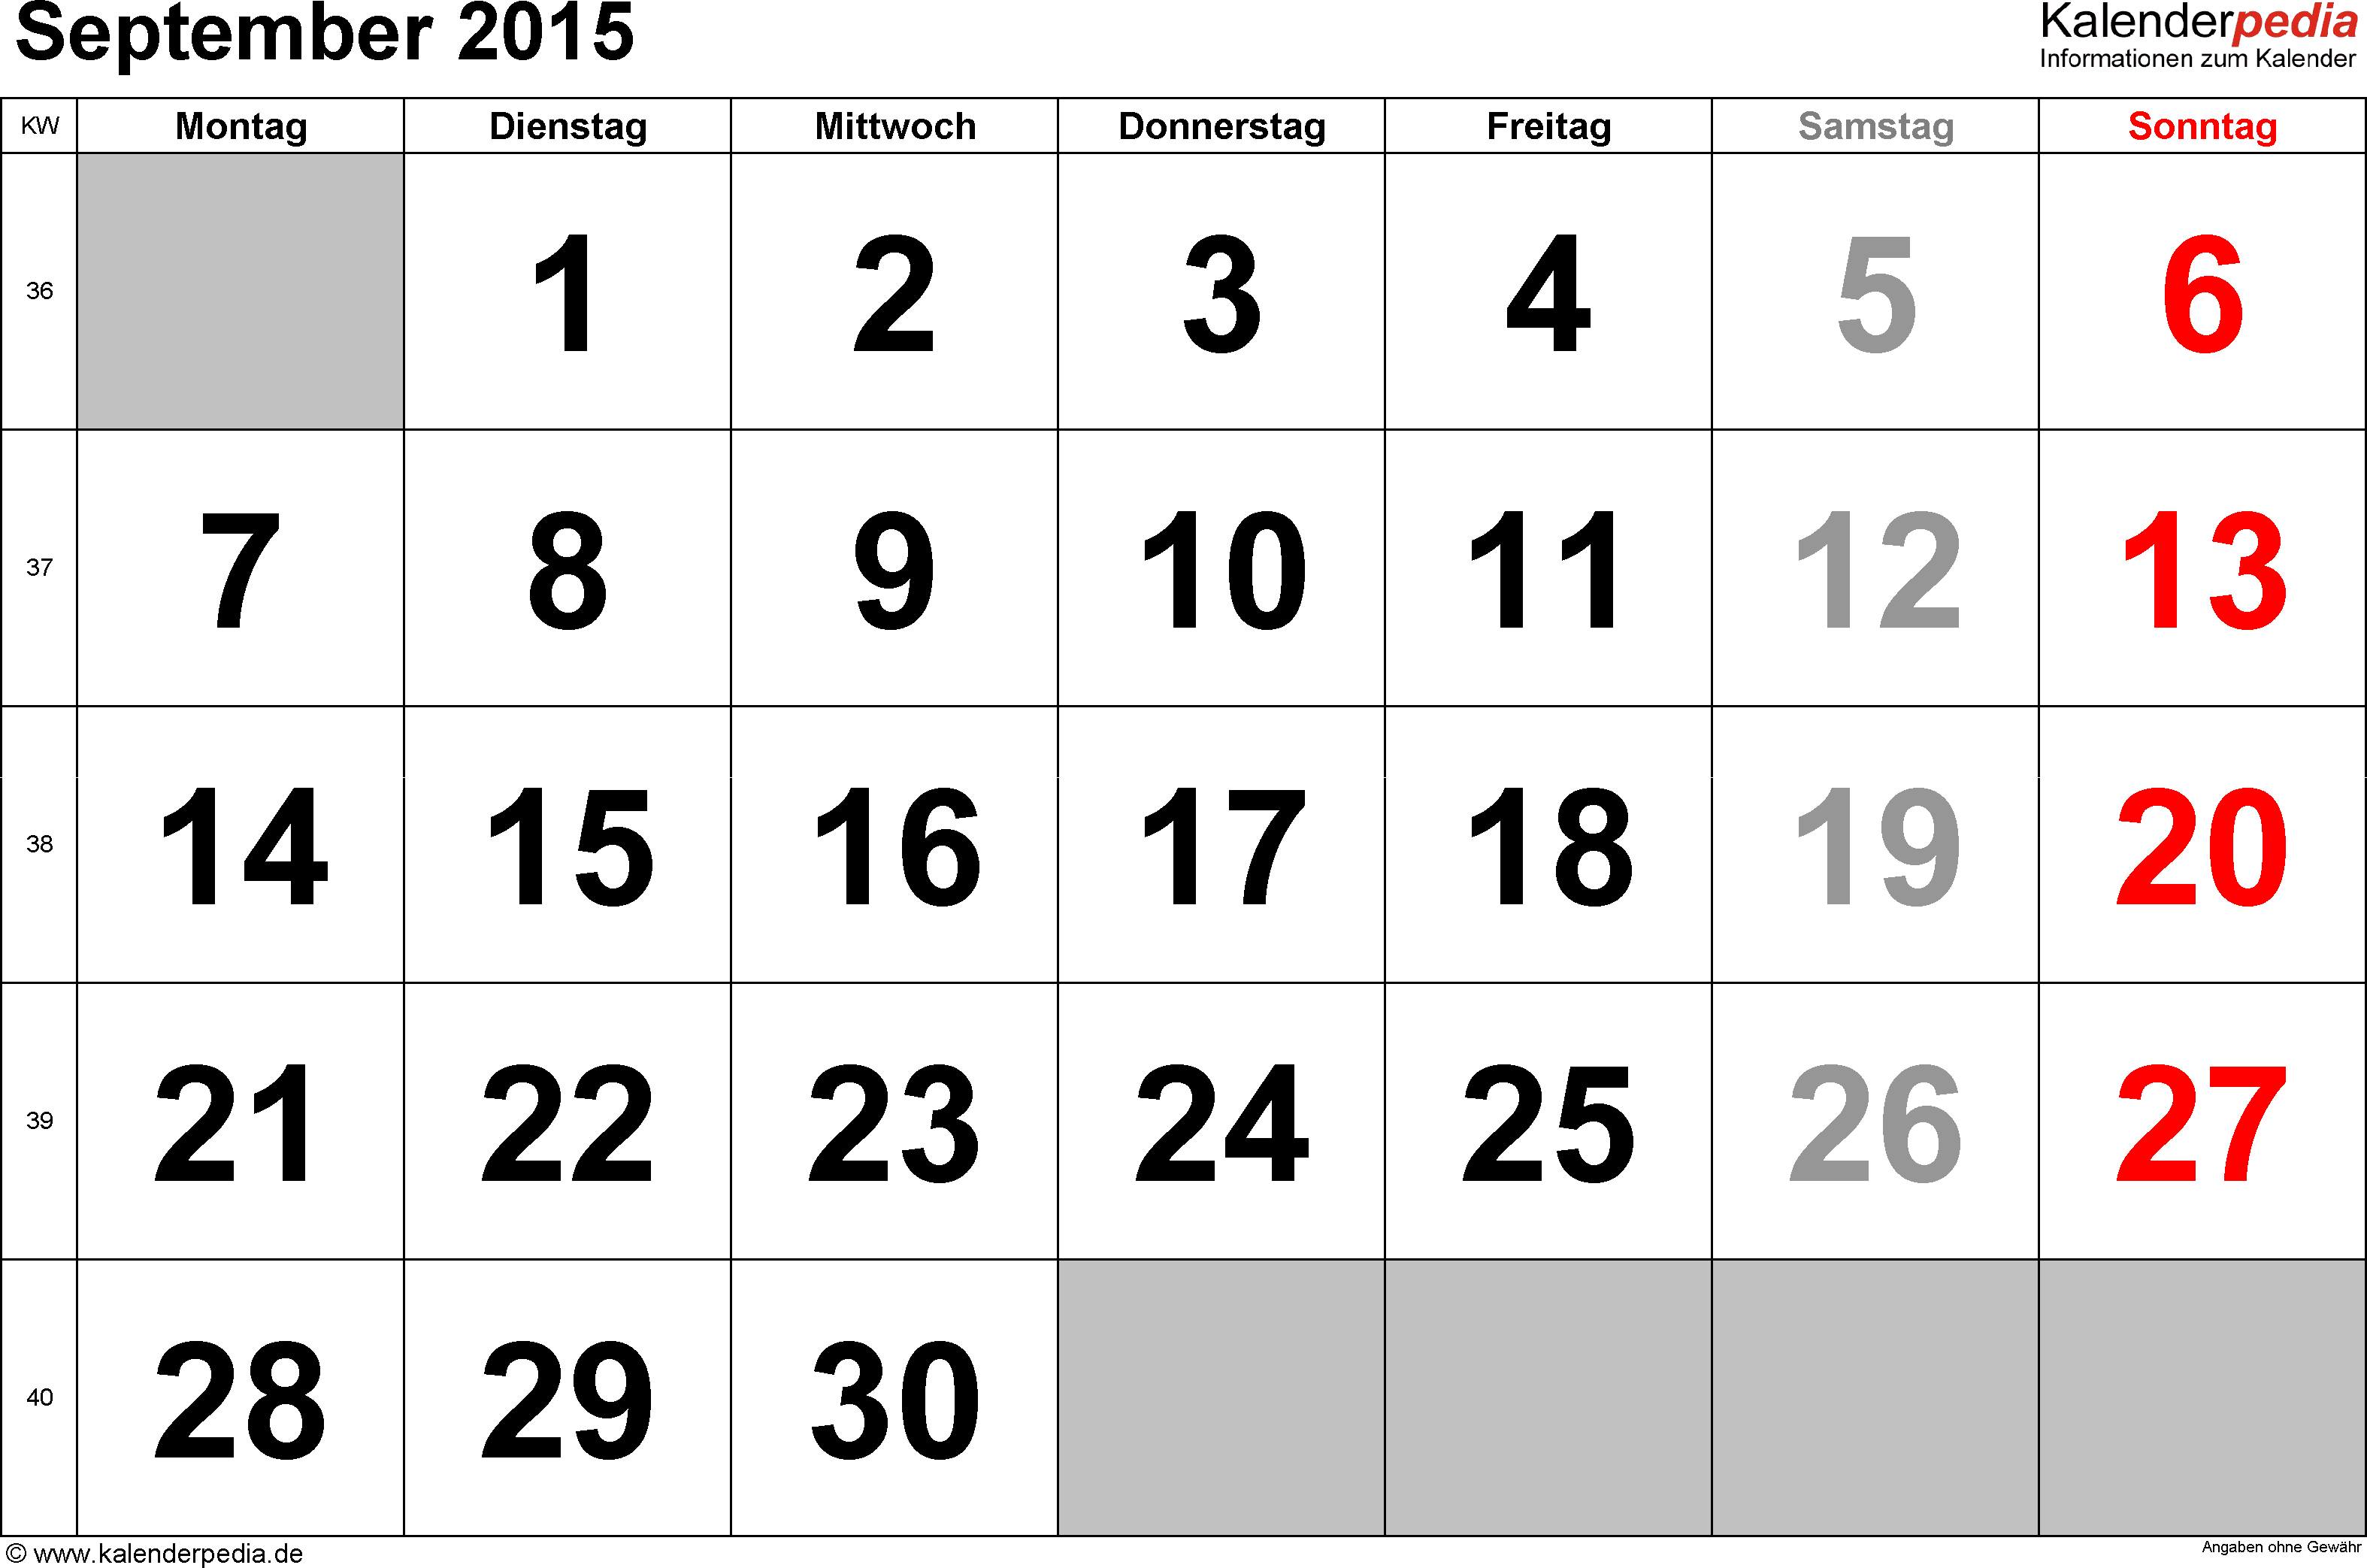 Kalender September 2015 im Querformat, grosse Ziffern